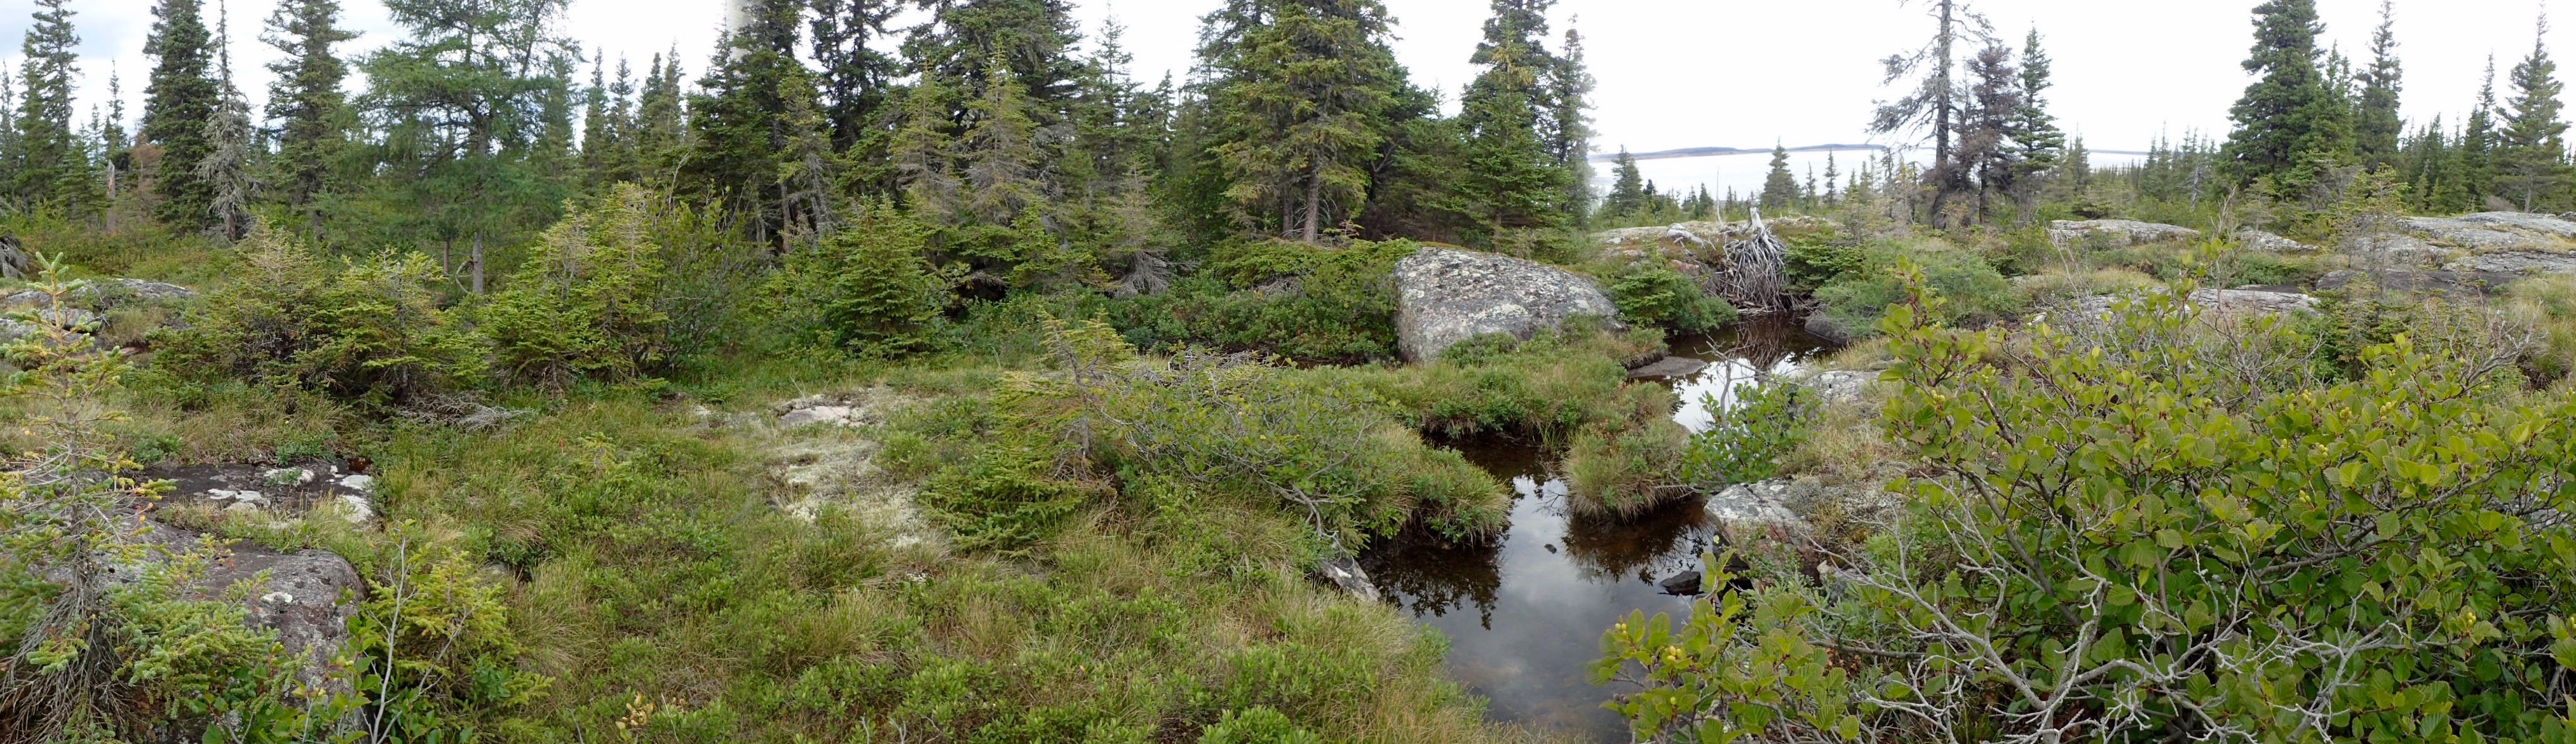 Panoramic photo showing the landscape. Various shrubs, trees and bushes are visible on a rocky ground in the foreground. A pool stretches from the middle to the bottom of the image to the right of the centre. A scattering of coniferous trees are present at the rear of the image.